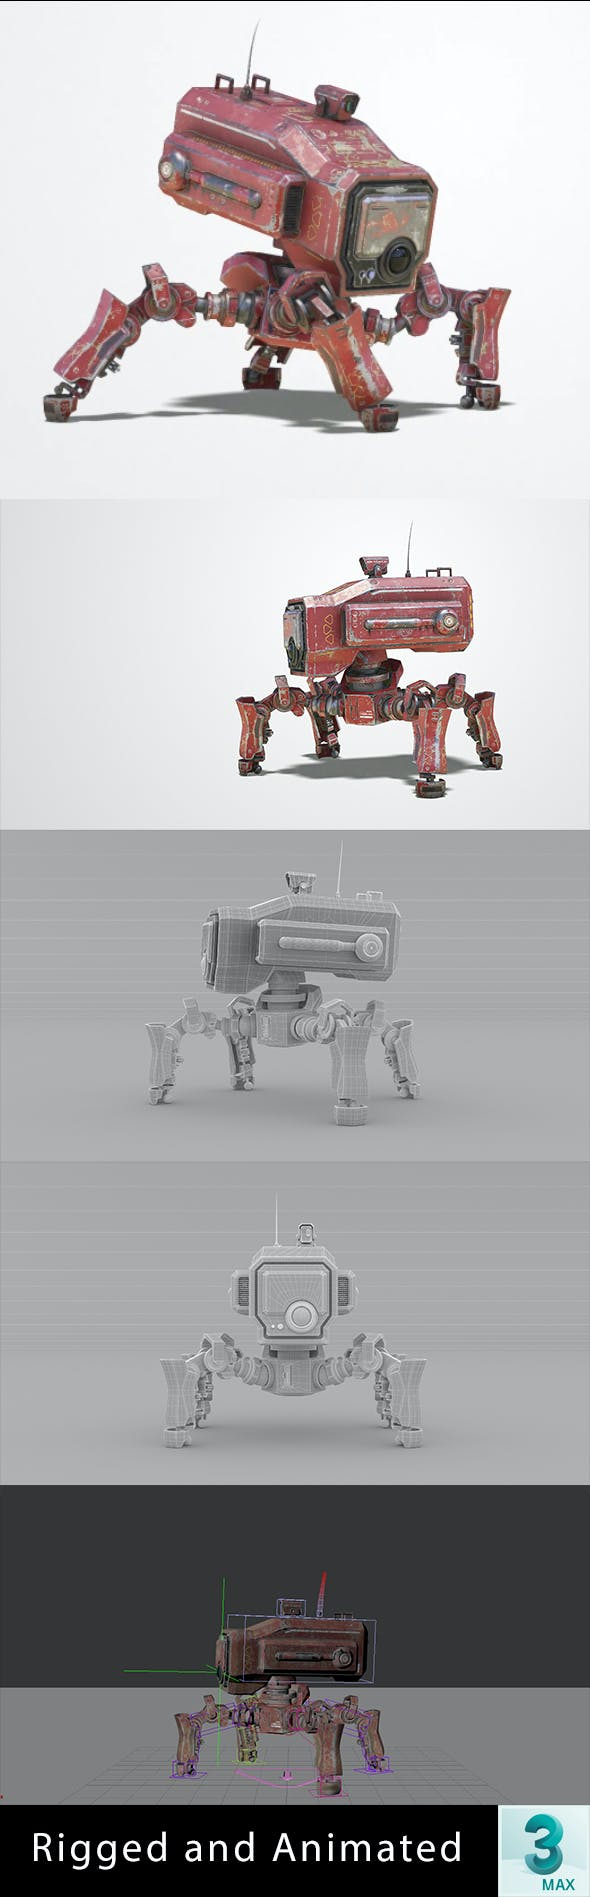 Animated Sci-Fi Robot - 3DOcean Item for Sale